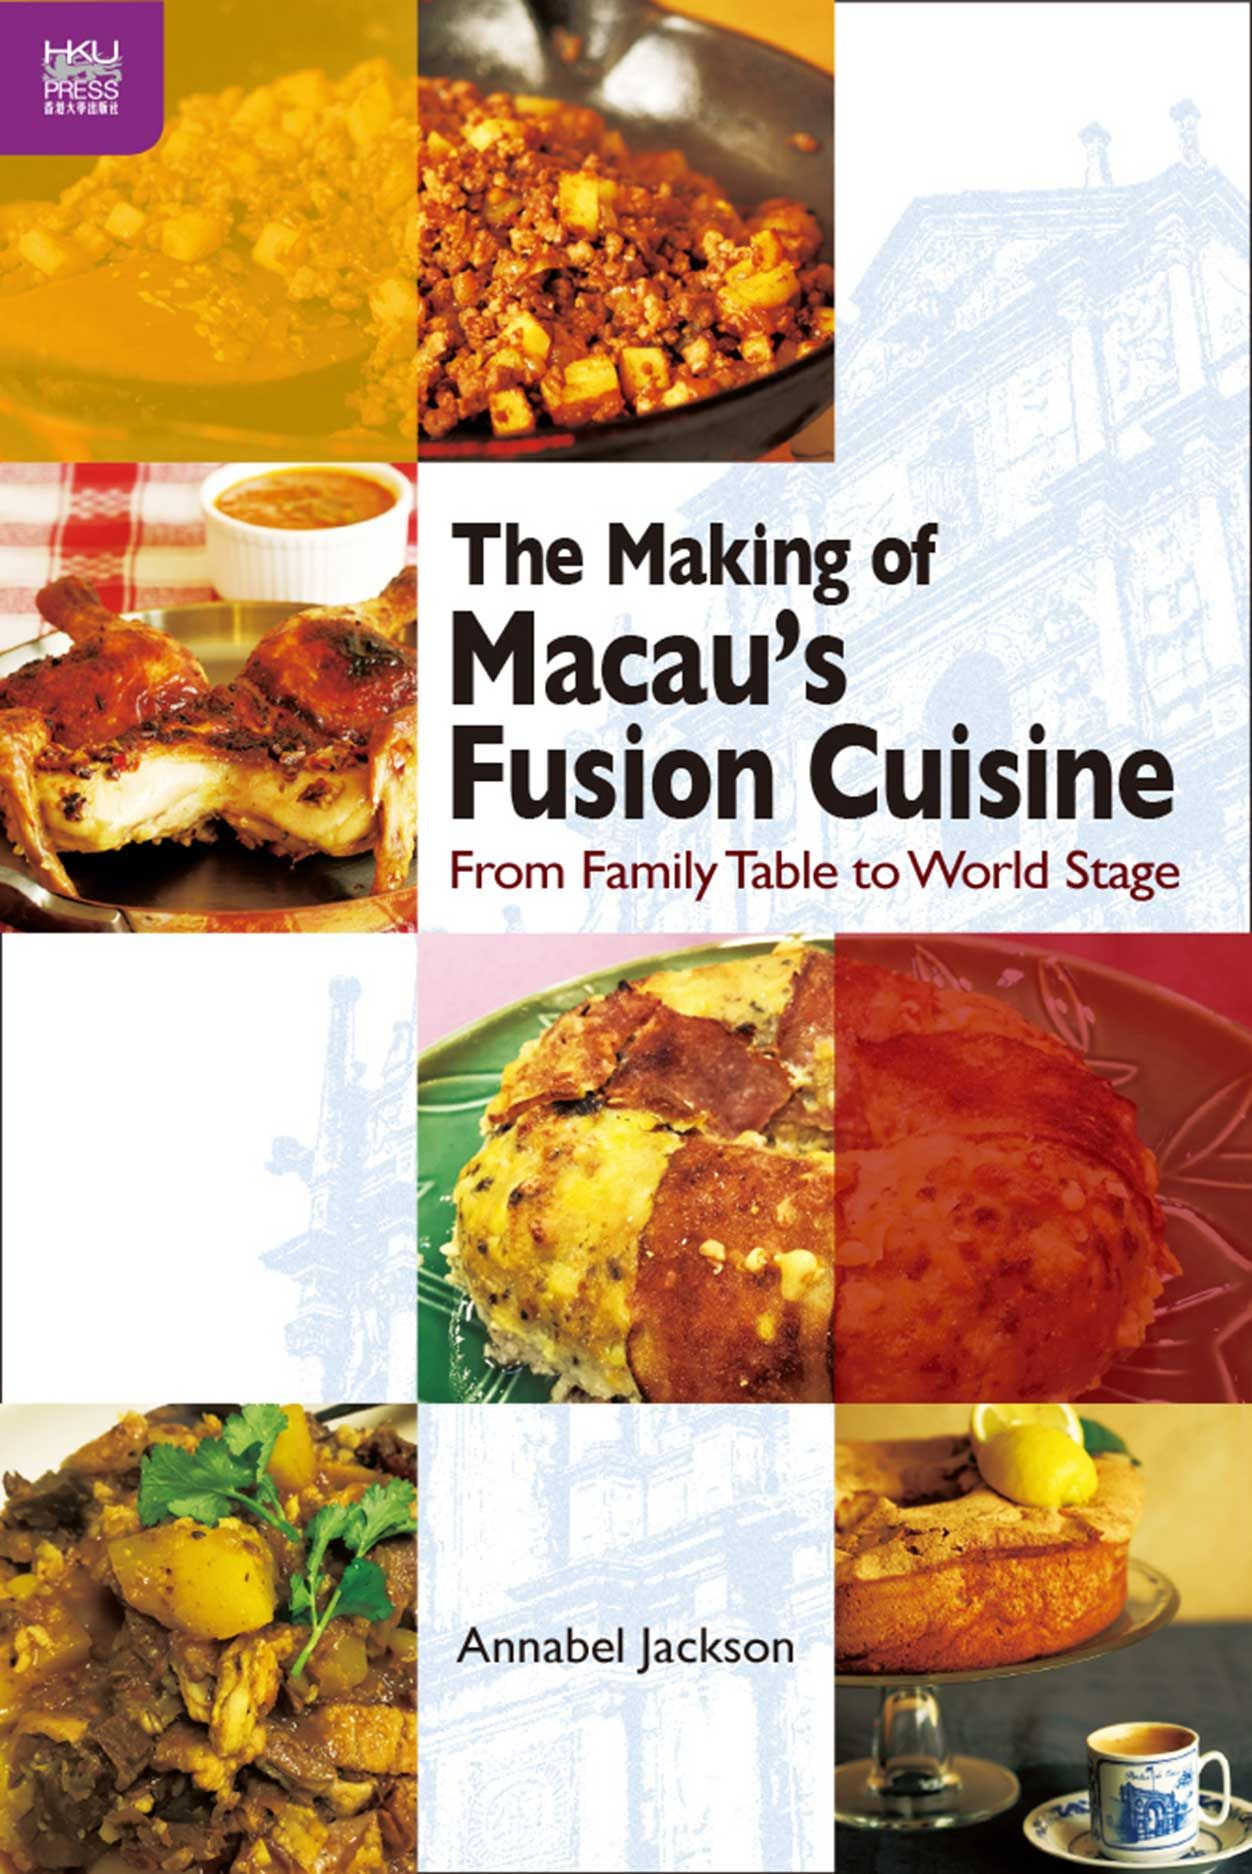 The Making of Macau's Fusion Cuisine